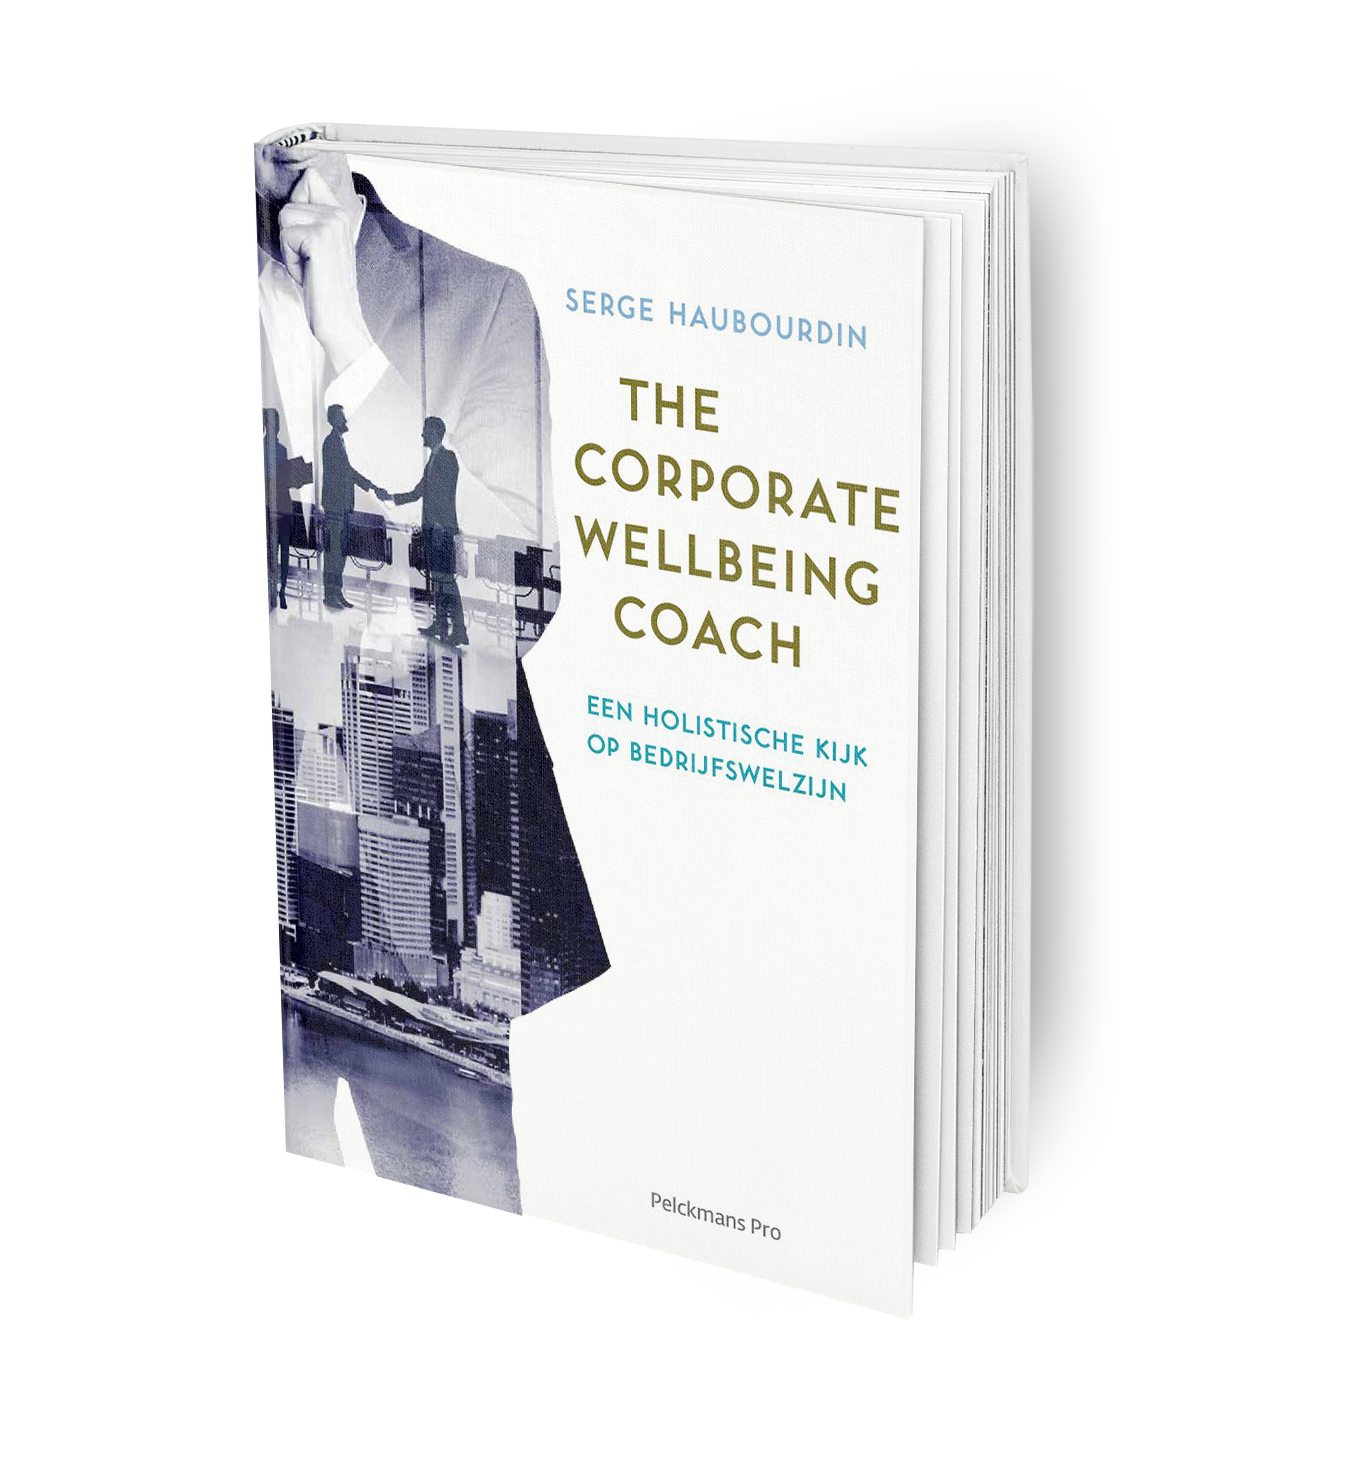 bedrijfswelzijn, corporate coach, serge haubourdin, the corporate wellbeing coach, corporate wellbeing, inspiratieboek